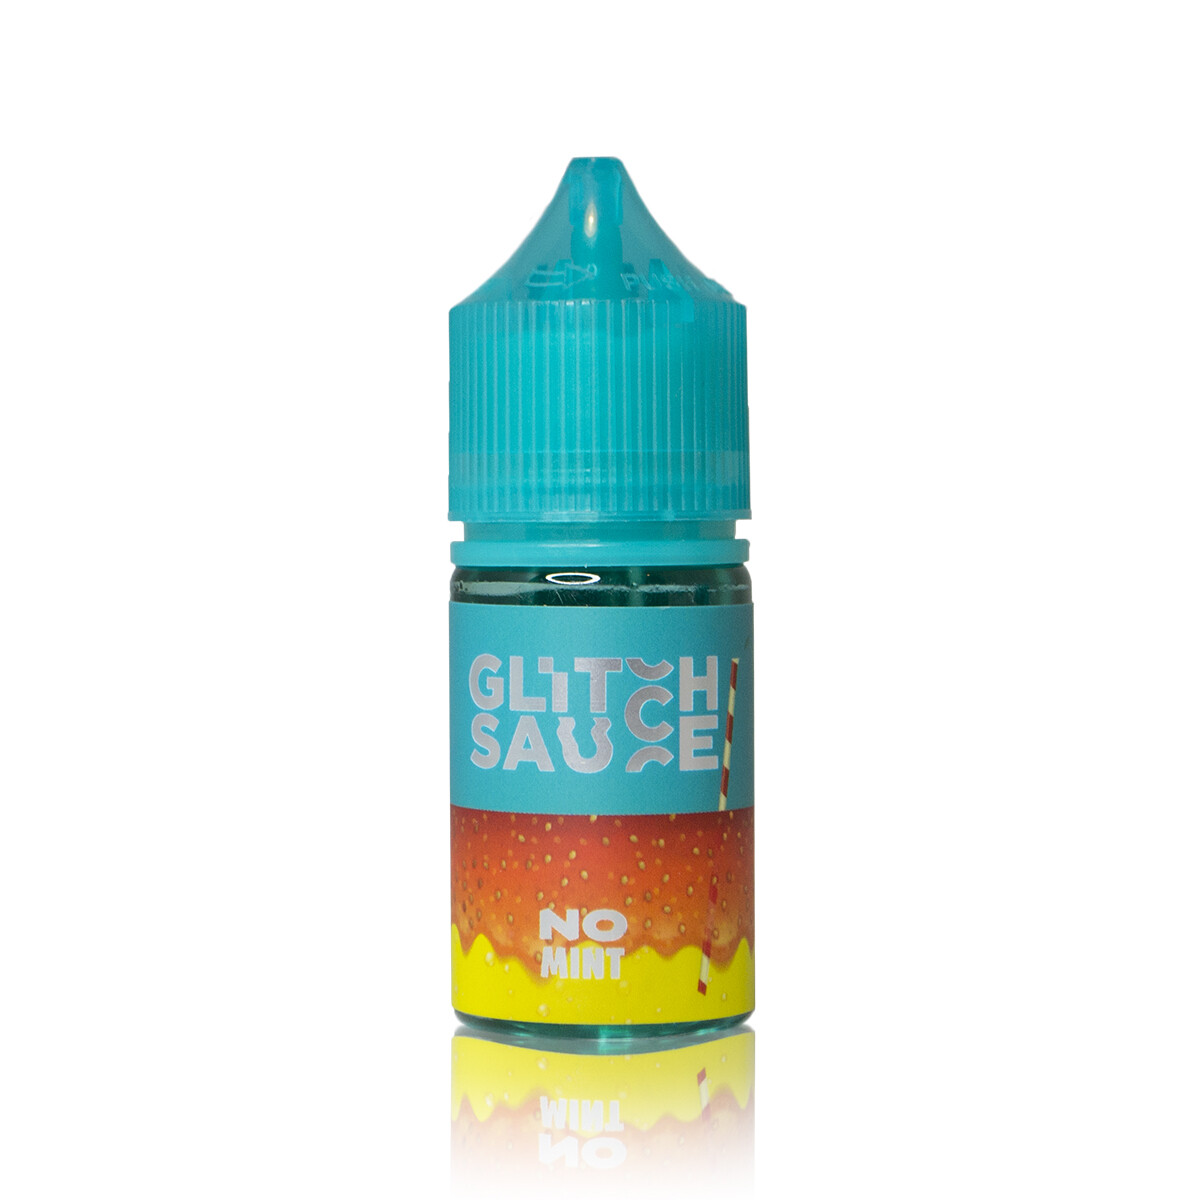 GLITCH SAUCE SALT: ROGUE 30ML